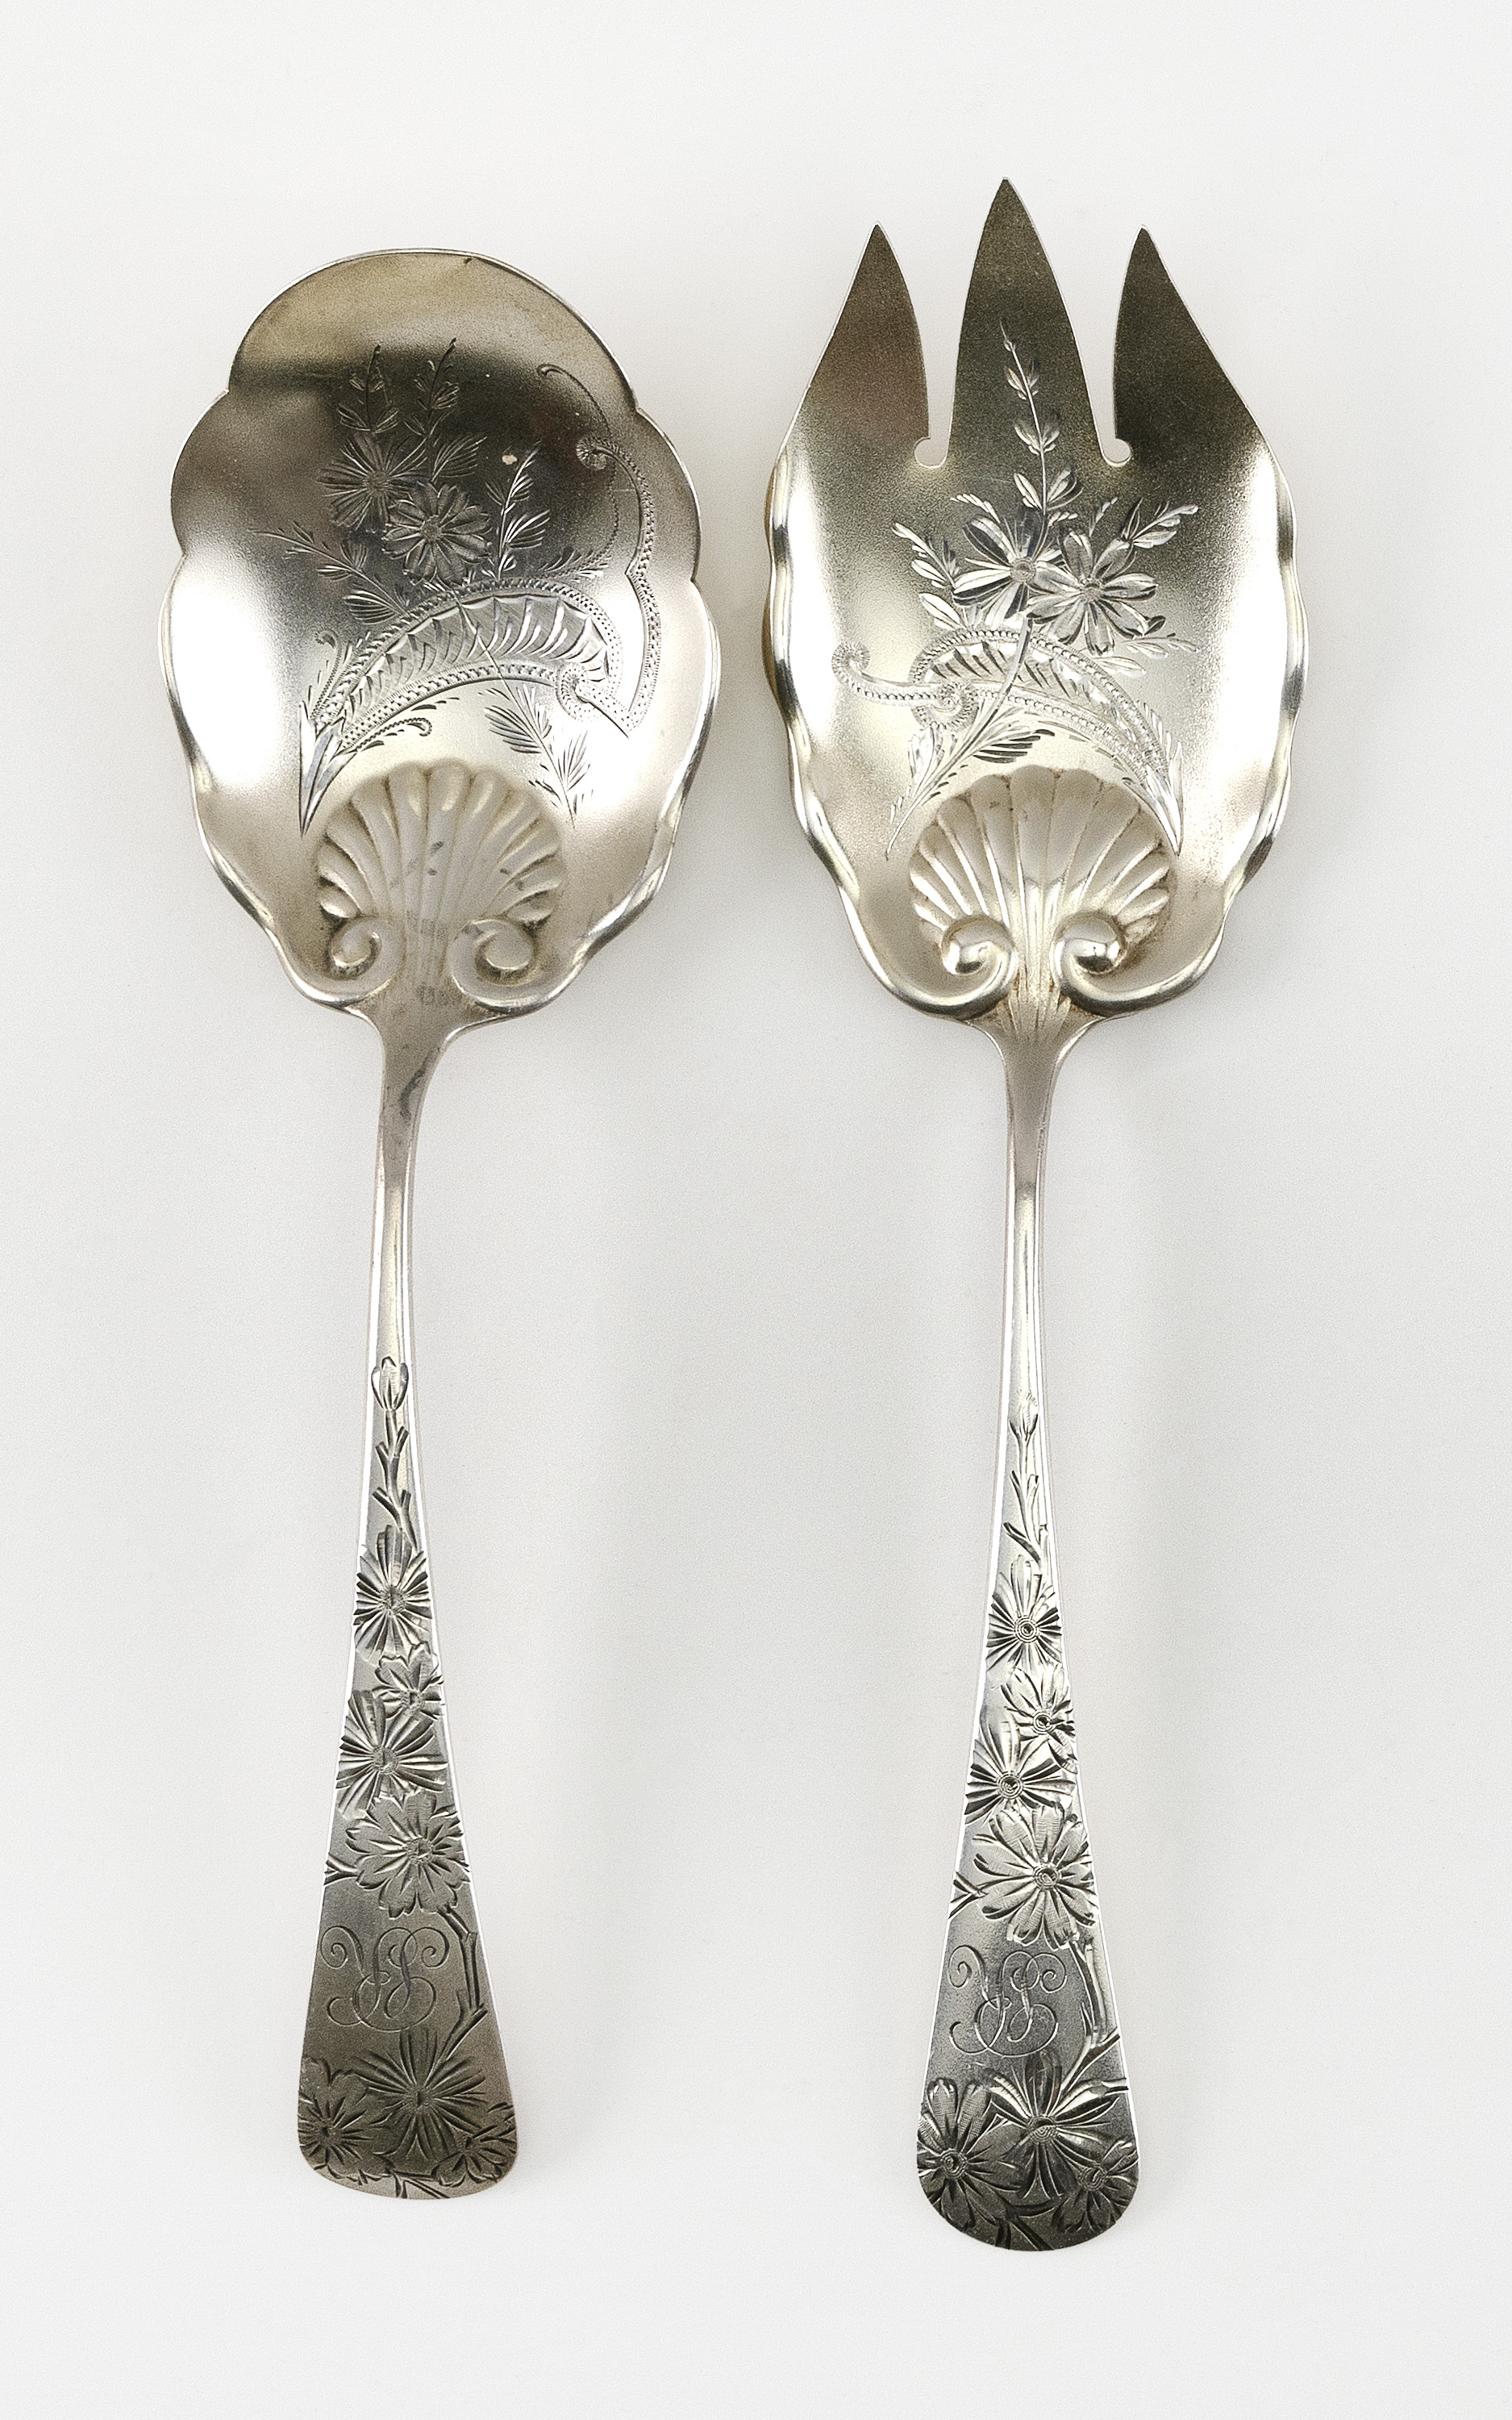 """GORHAM """"CHRYSANTHEMUM"""" STERLING SILVER SALAD-SERVING FORK AND SPOON Providence, Rhode Island, Circa 1885 Approx. 3.8 troy oz."""